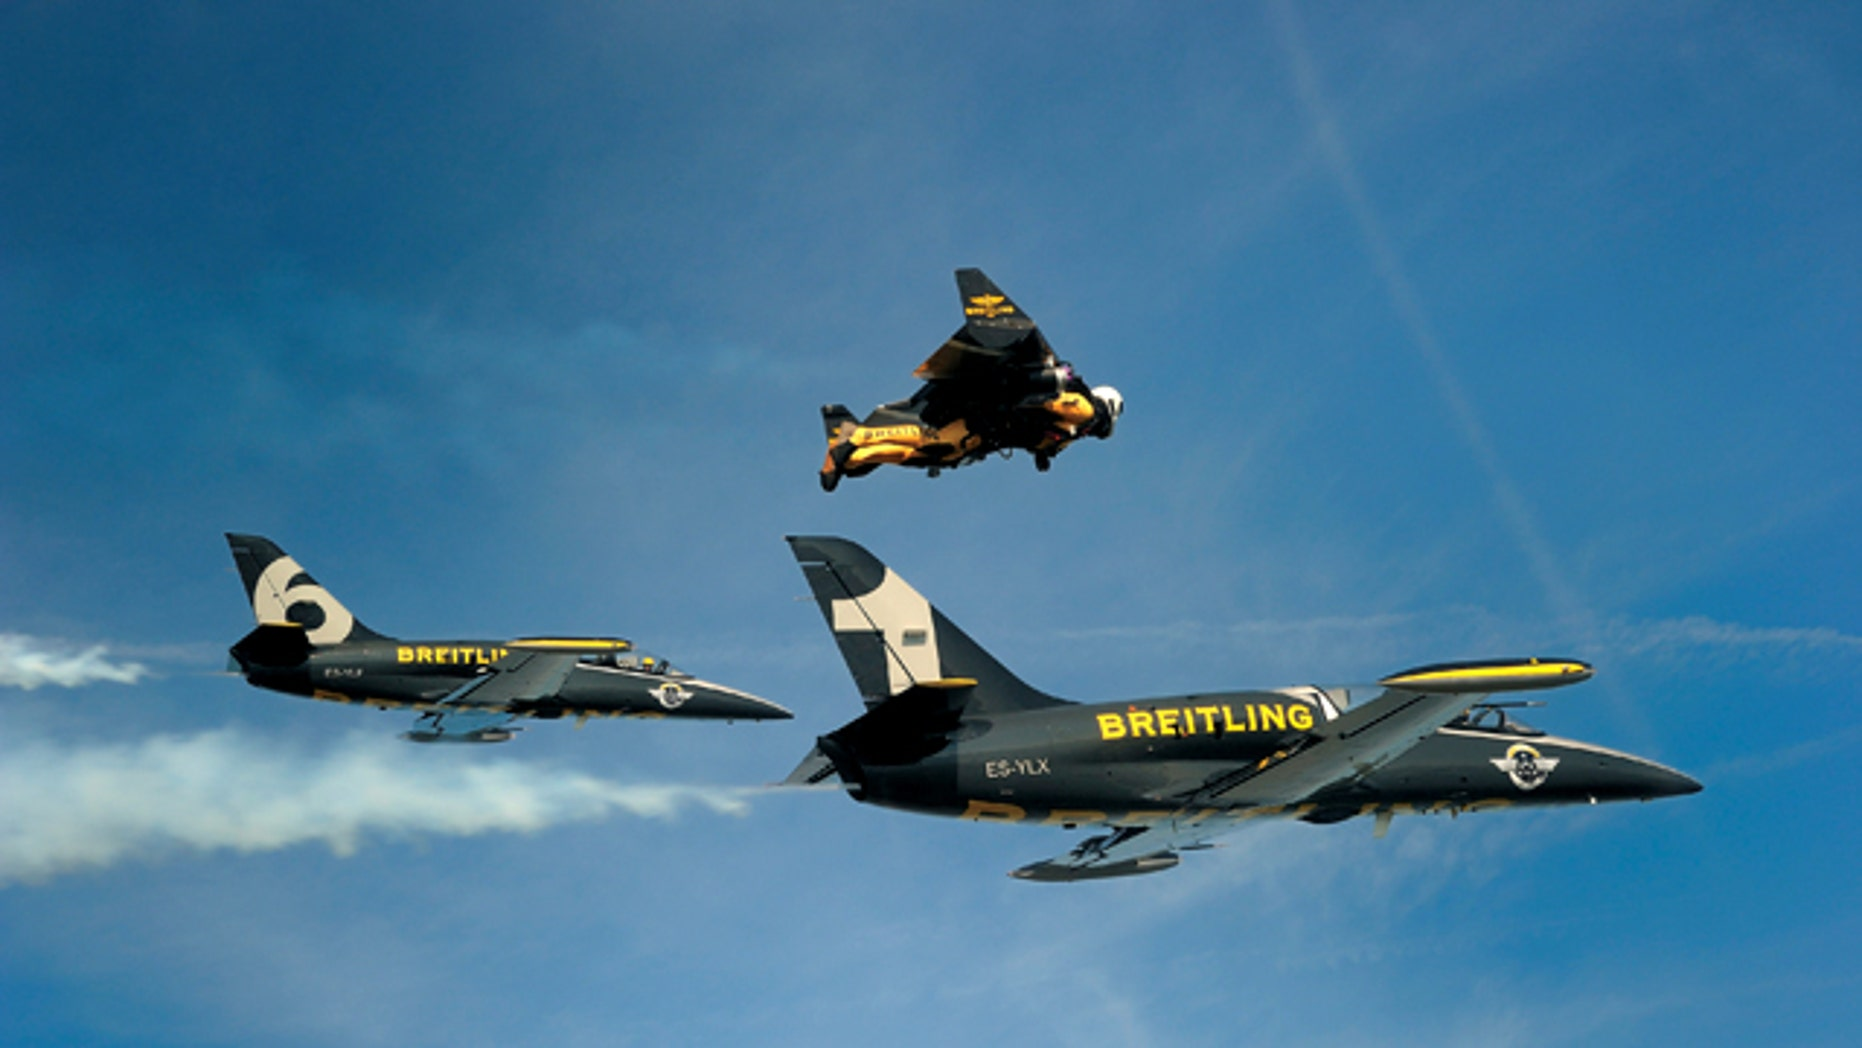 Jetman Yves Rossy flies in his custom wingsuit alogside a pair of Swiss air force jets.